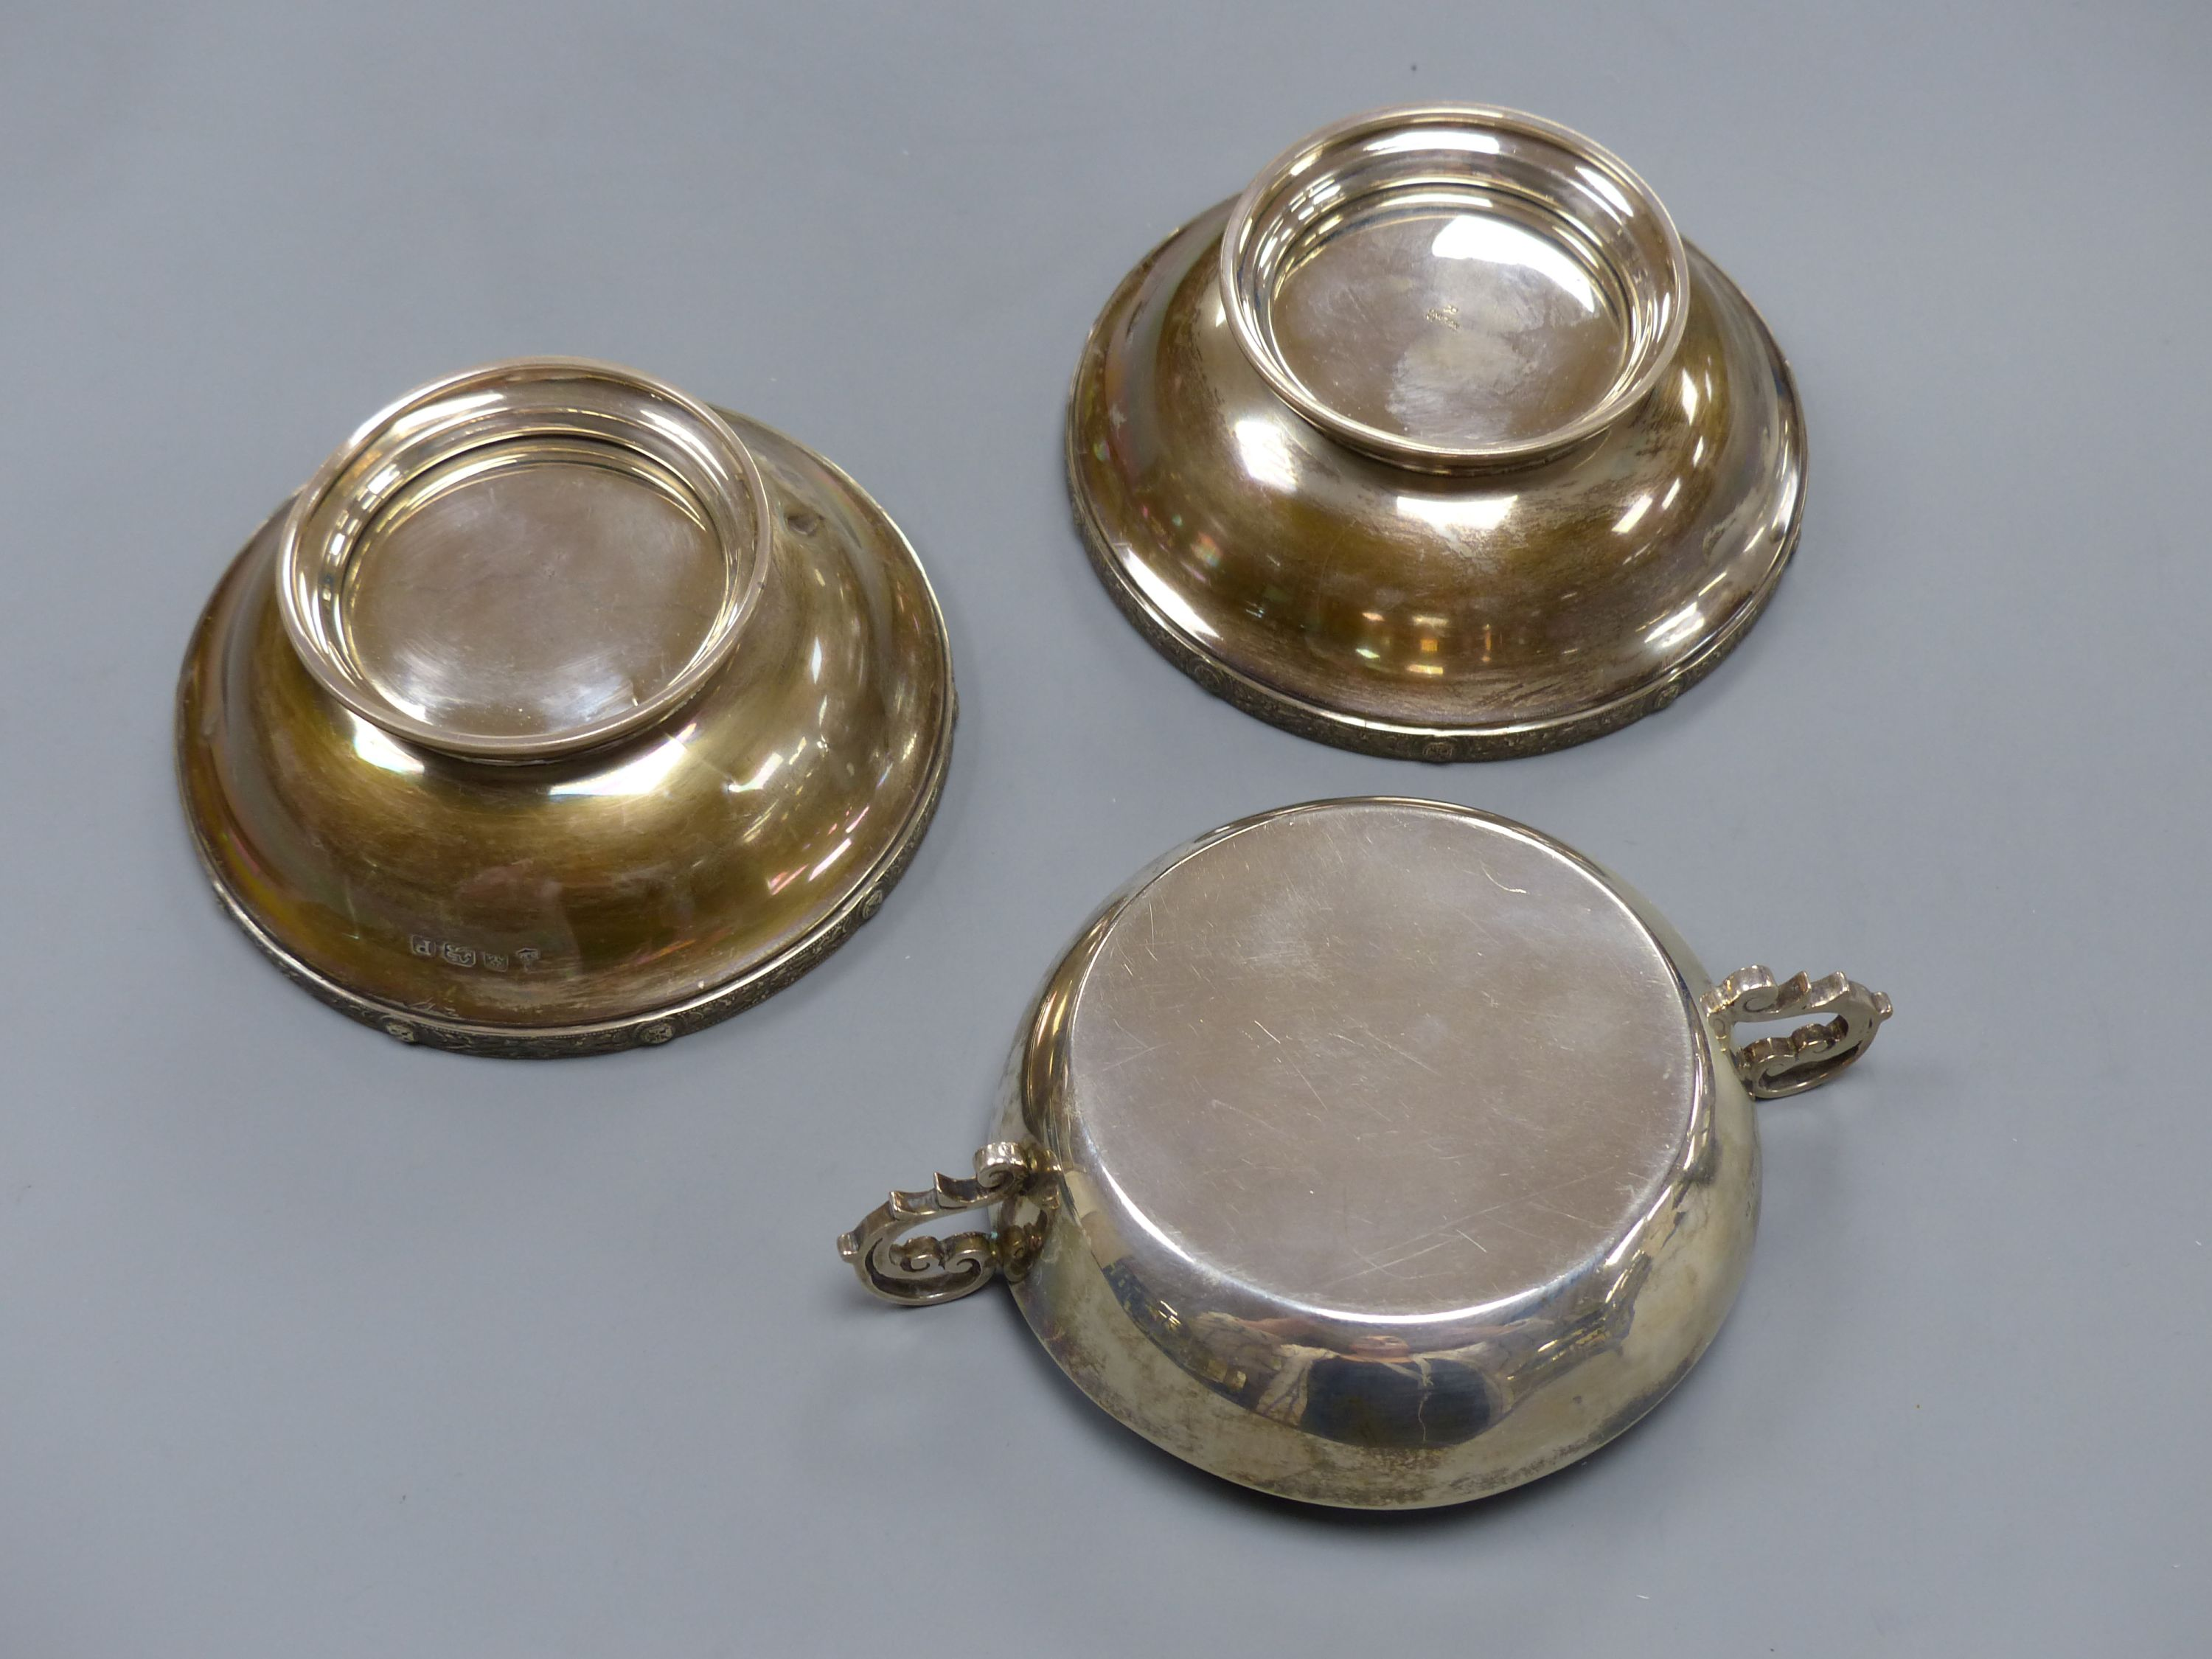 A pair of George VI silver pedestal nut dishes, Birmingham, 1939, 10.8cm and a similar two handled - Image 4 of 4